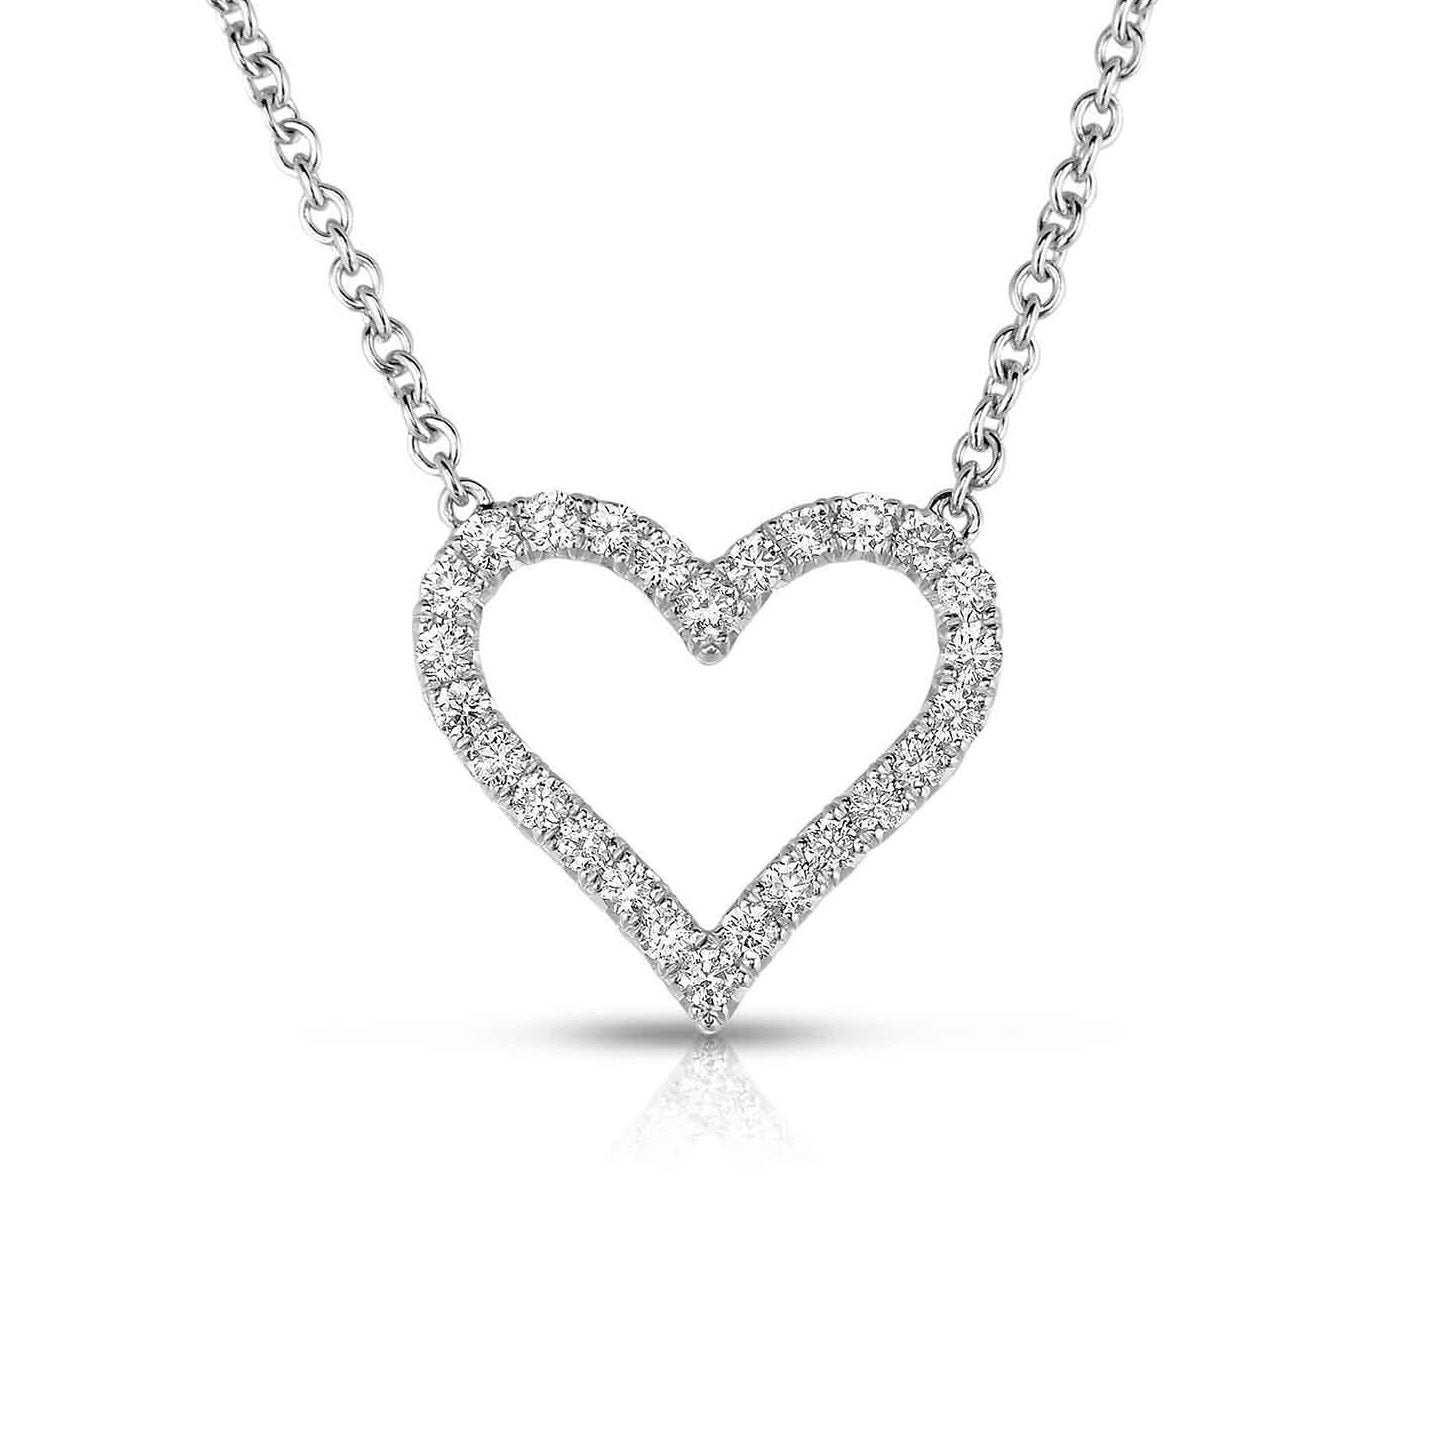 Sabel Collection 14K White Gold Diamond Heart Pendant